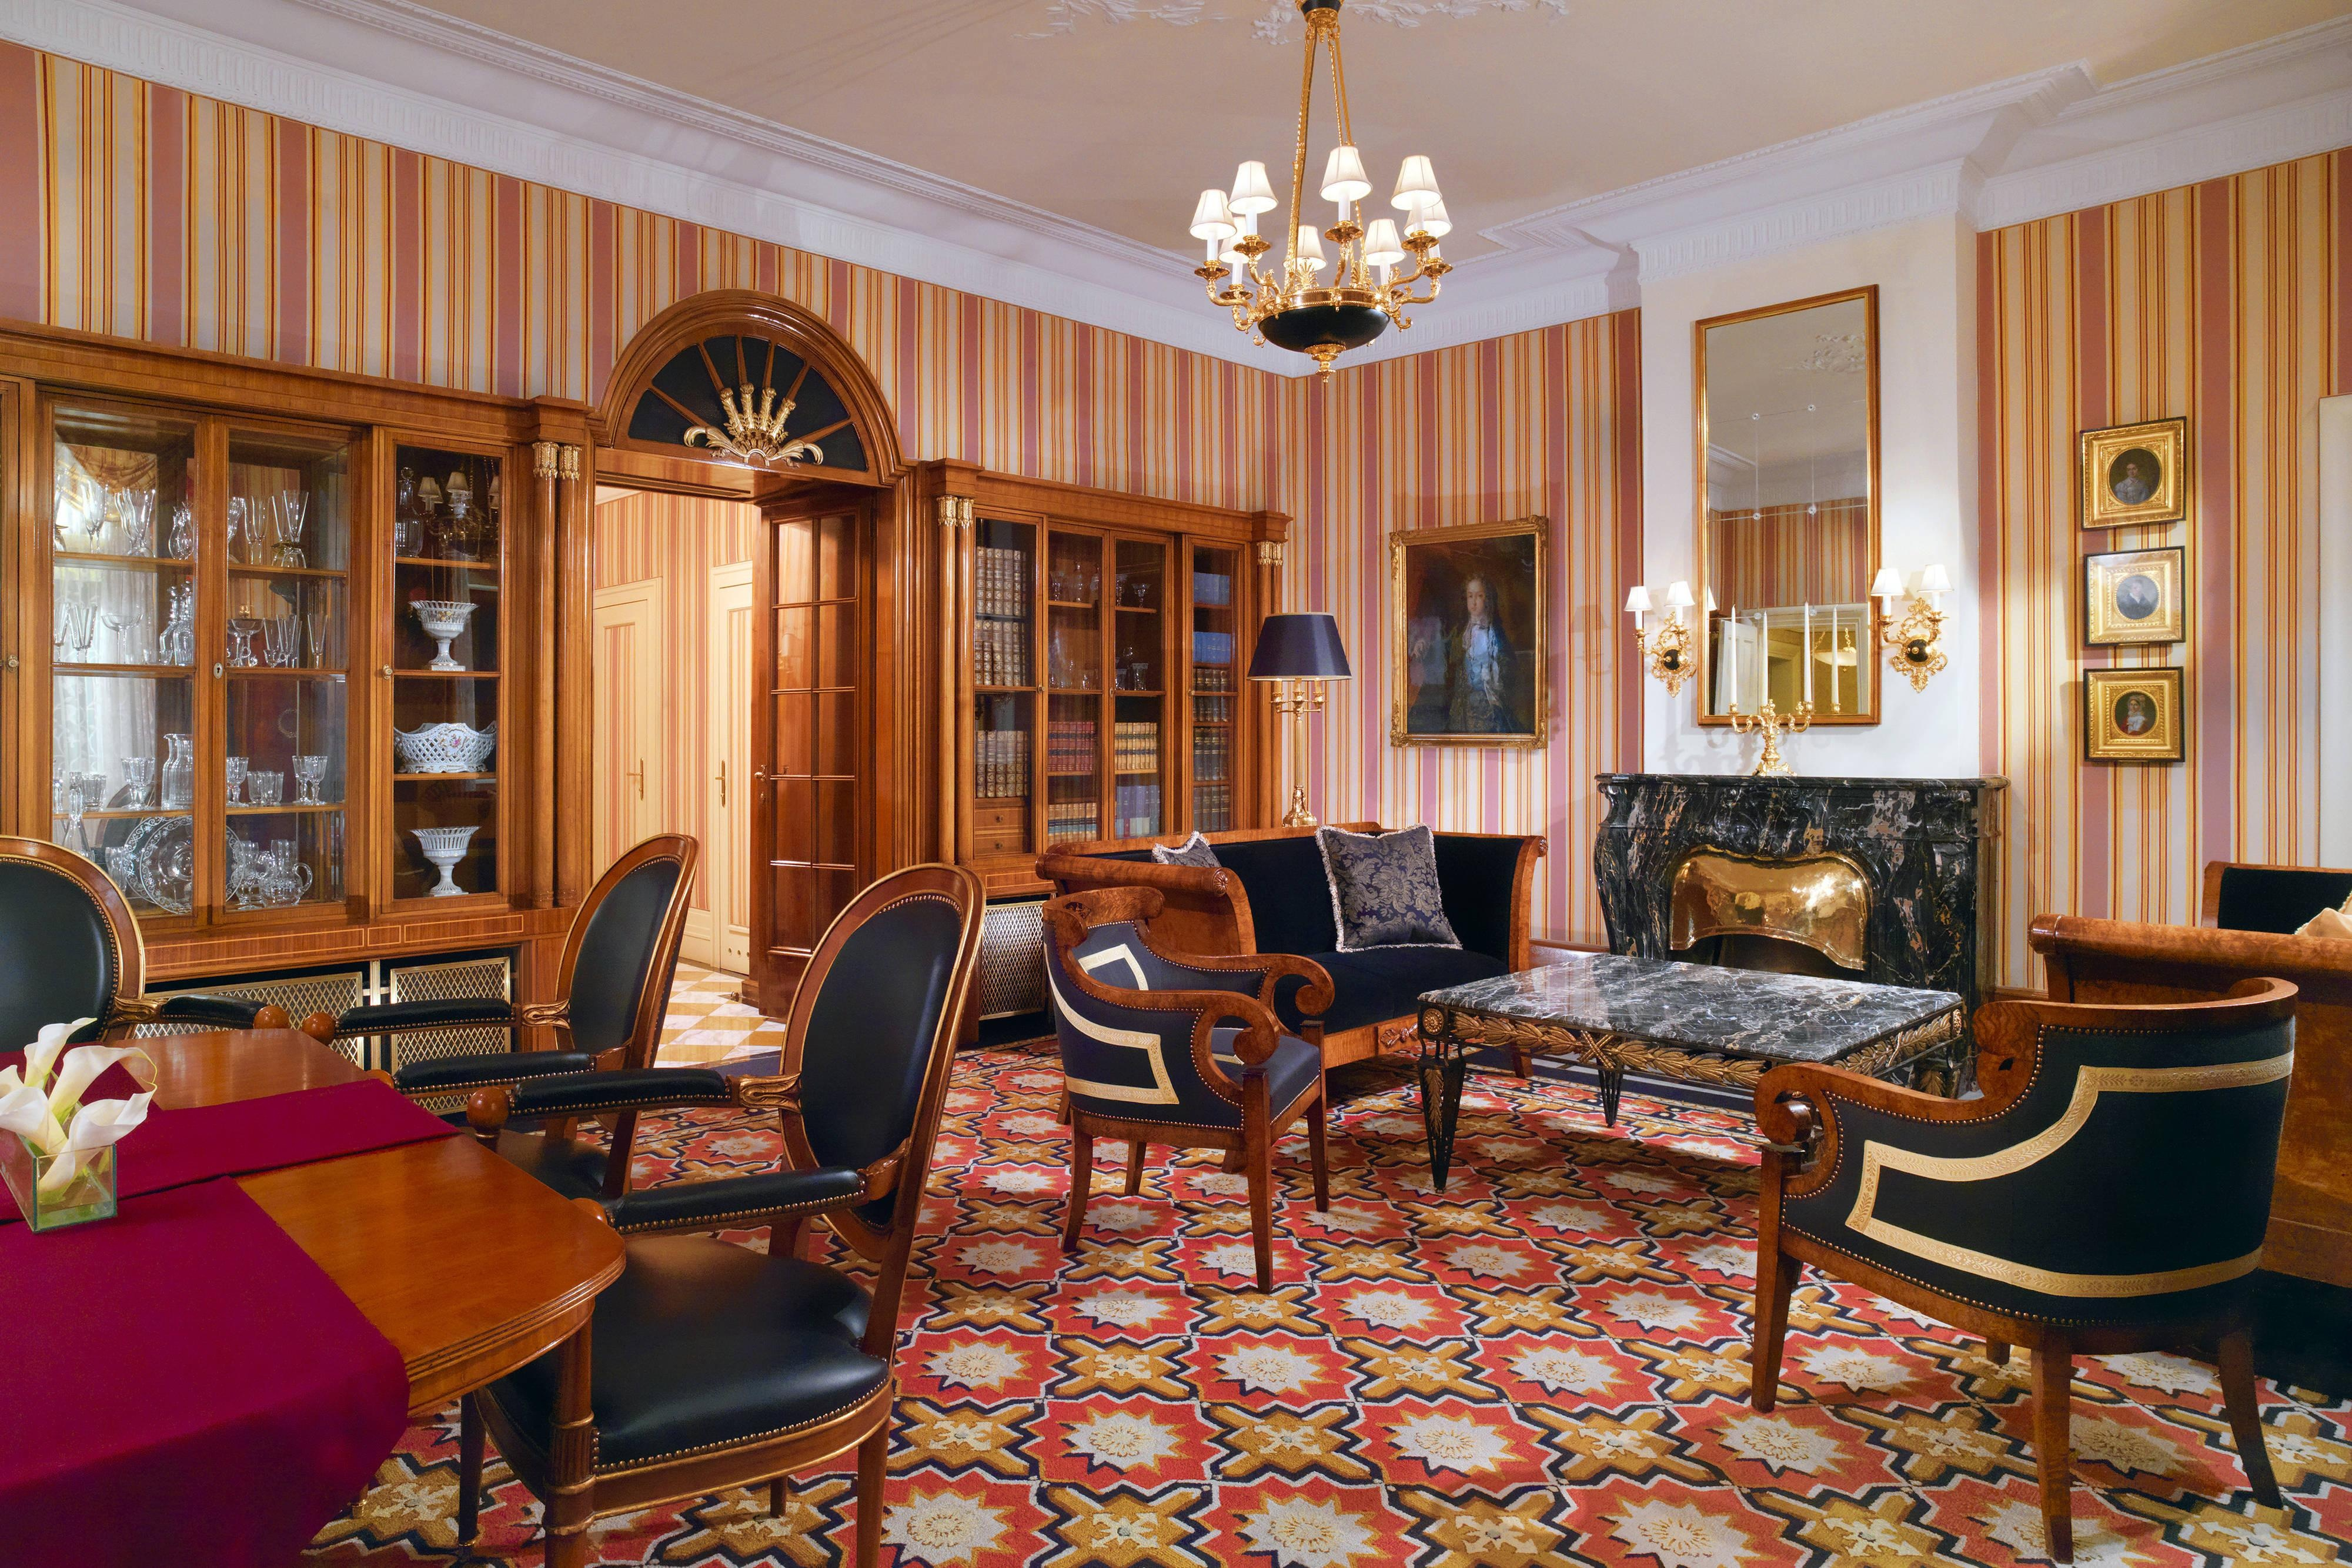 Prince of Wales Suite - Library